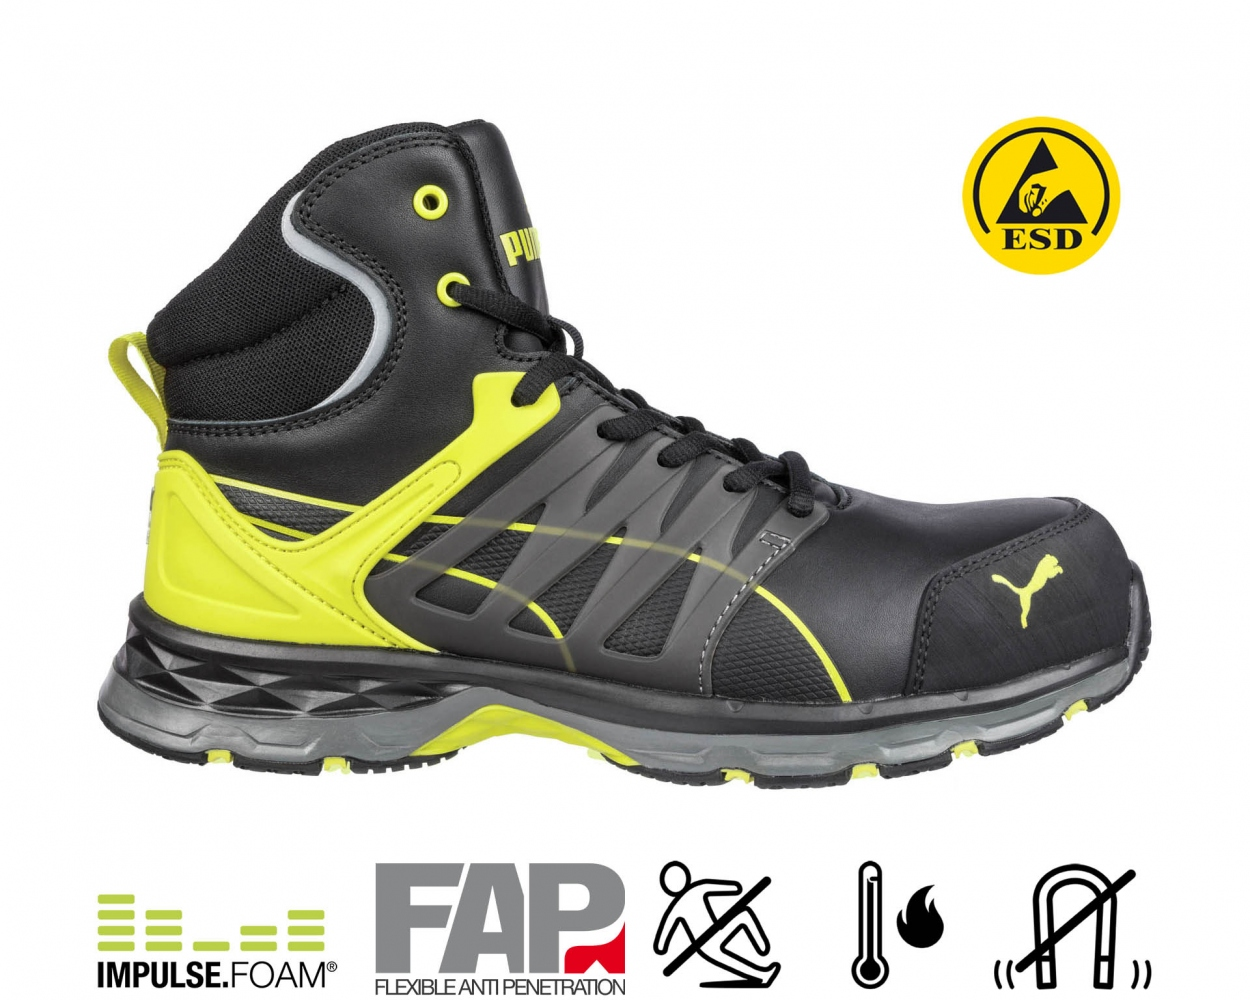 pics/Puma/Motion Protect/puma-633880-velocity-safety-boots-yellow.jpg